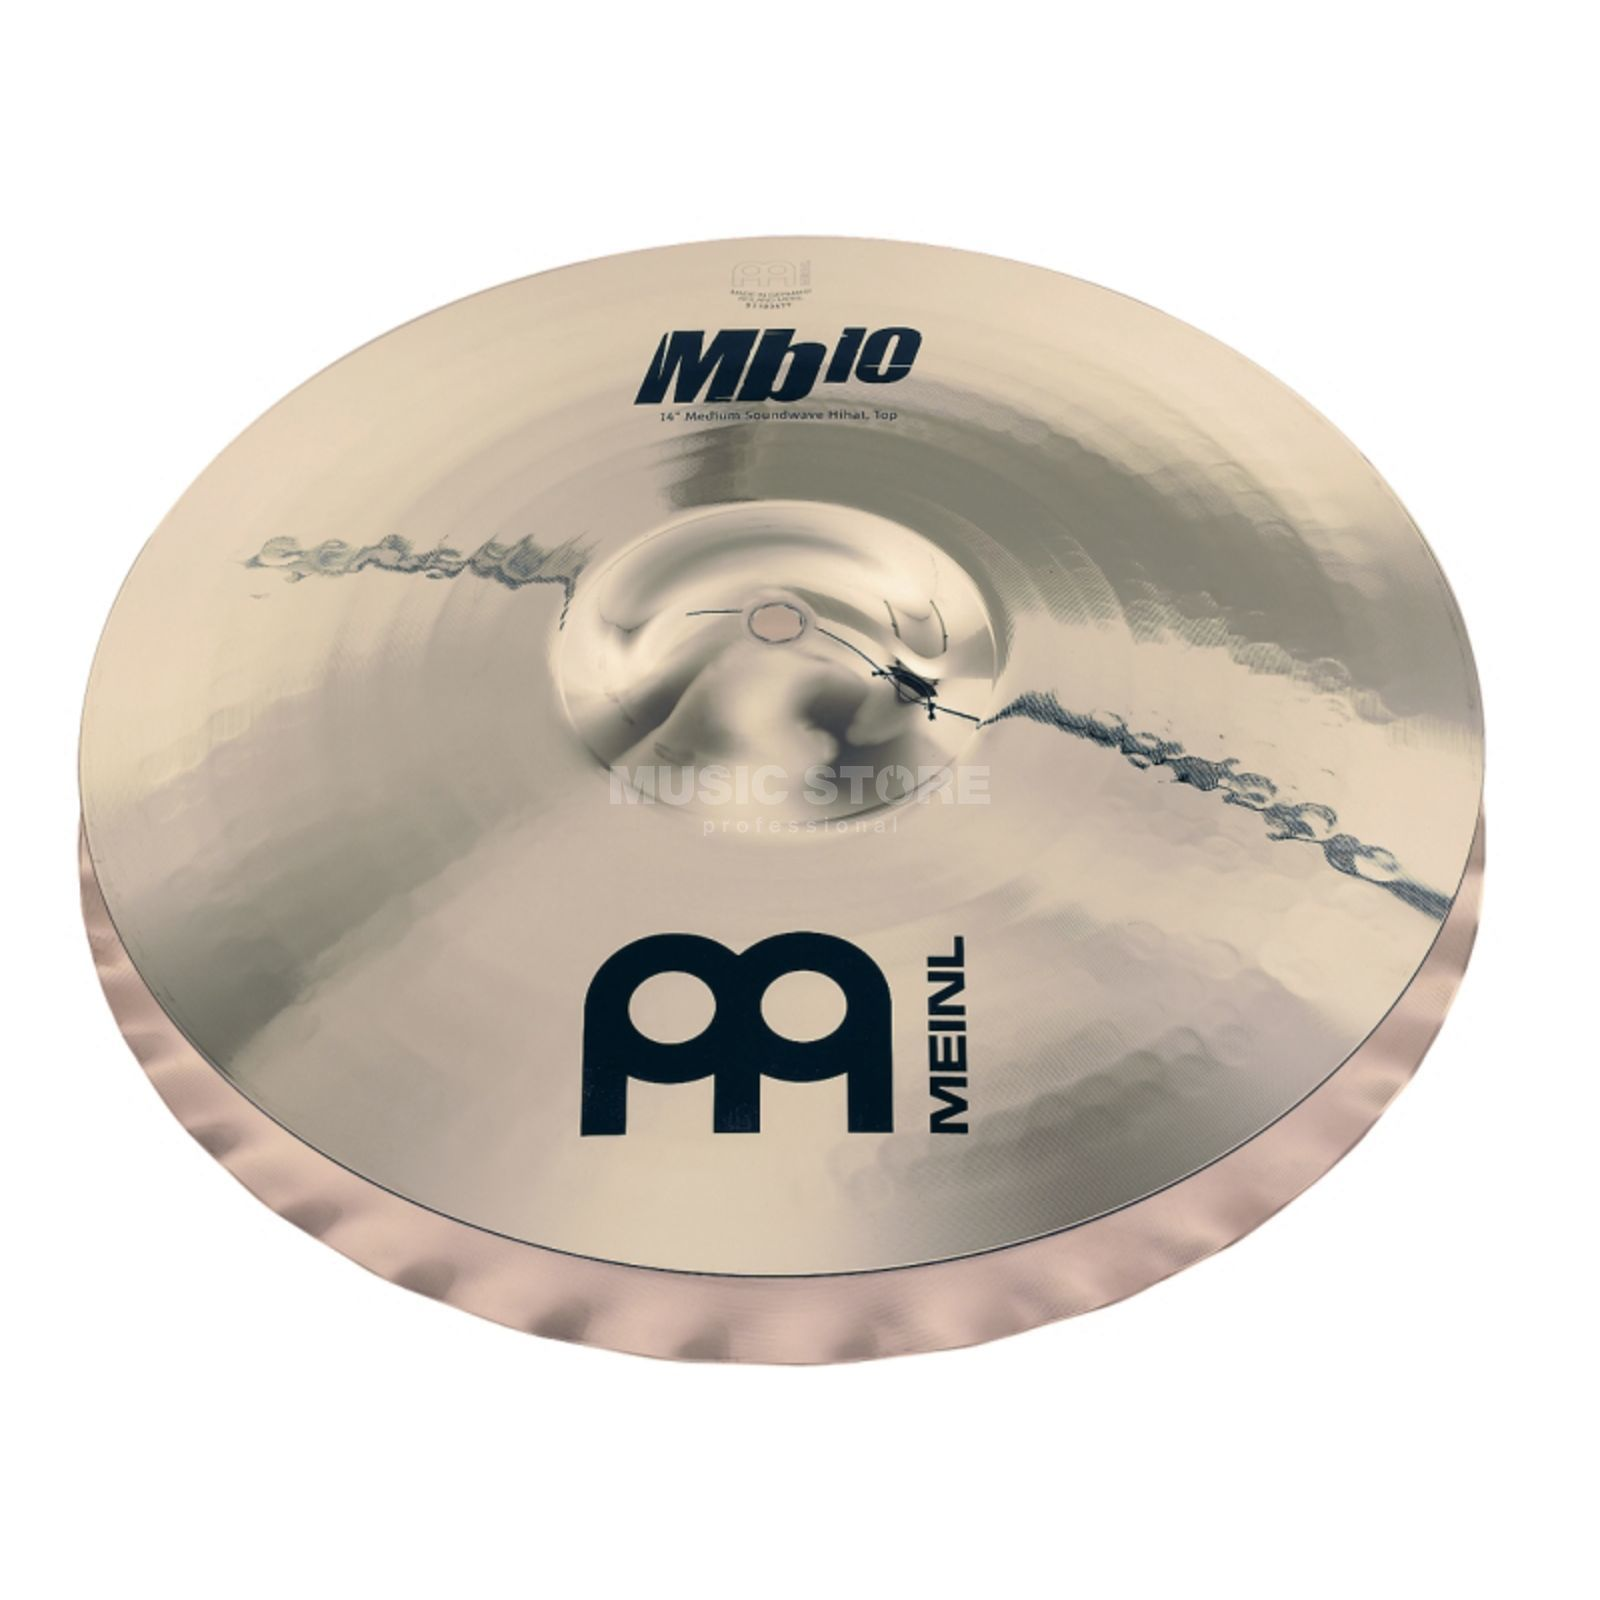 "Meinl MB10 Heavy Soundwave HiHat 14"" MB10-14HSW-B, Brilliant Finish Produktbillede"